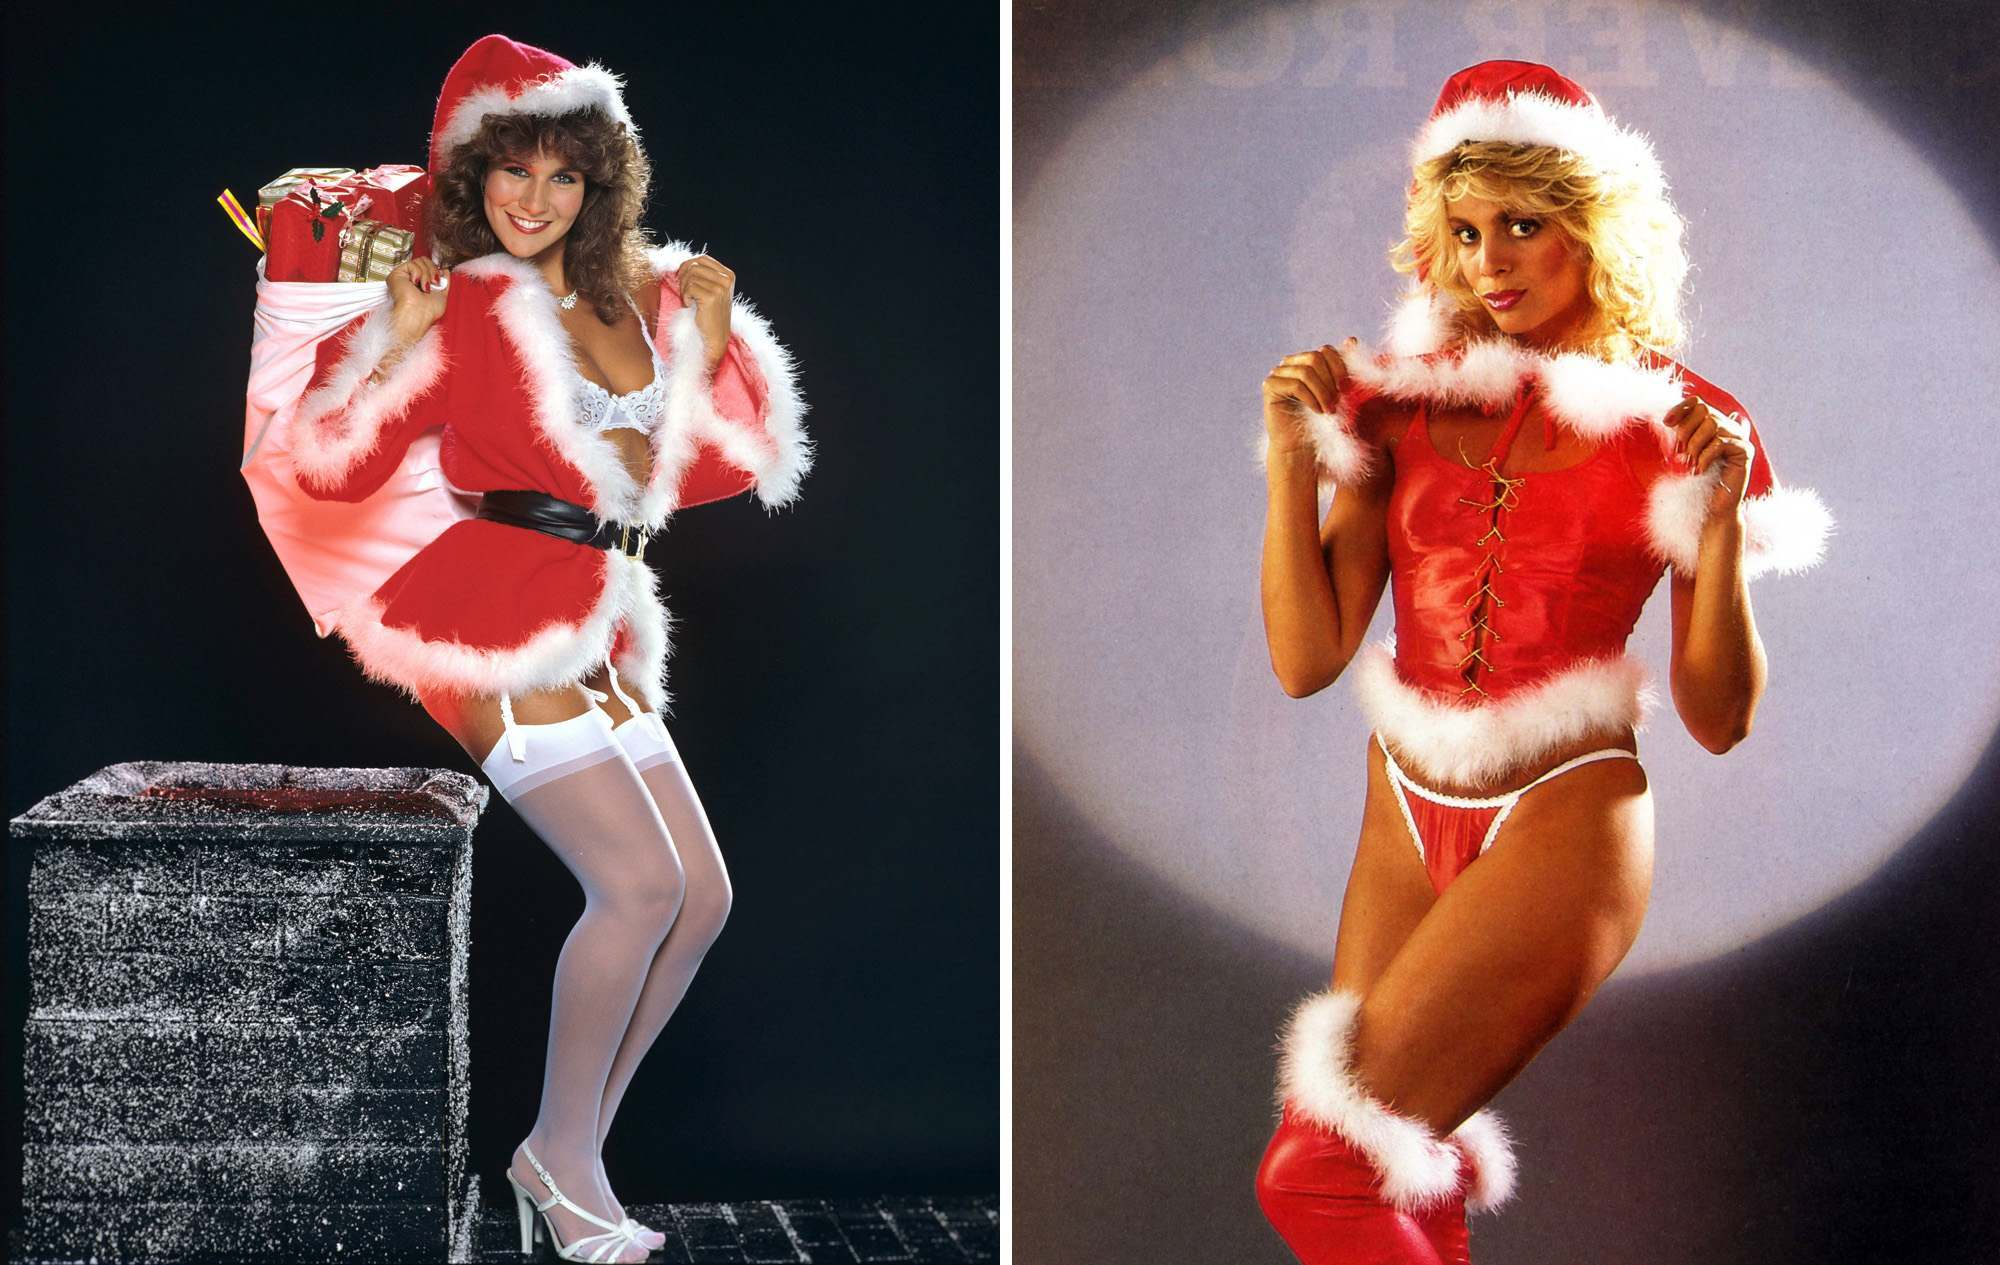 Christmas Babes.The Babes Of St Nick Santa S Helpers Of Christmas Past